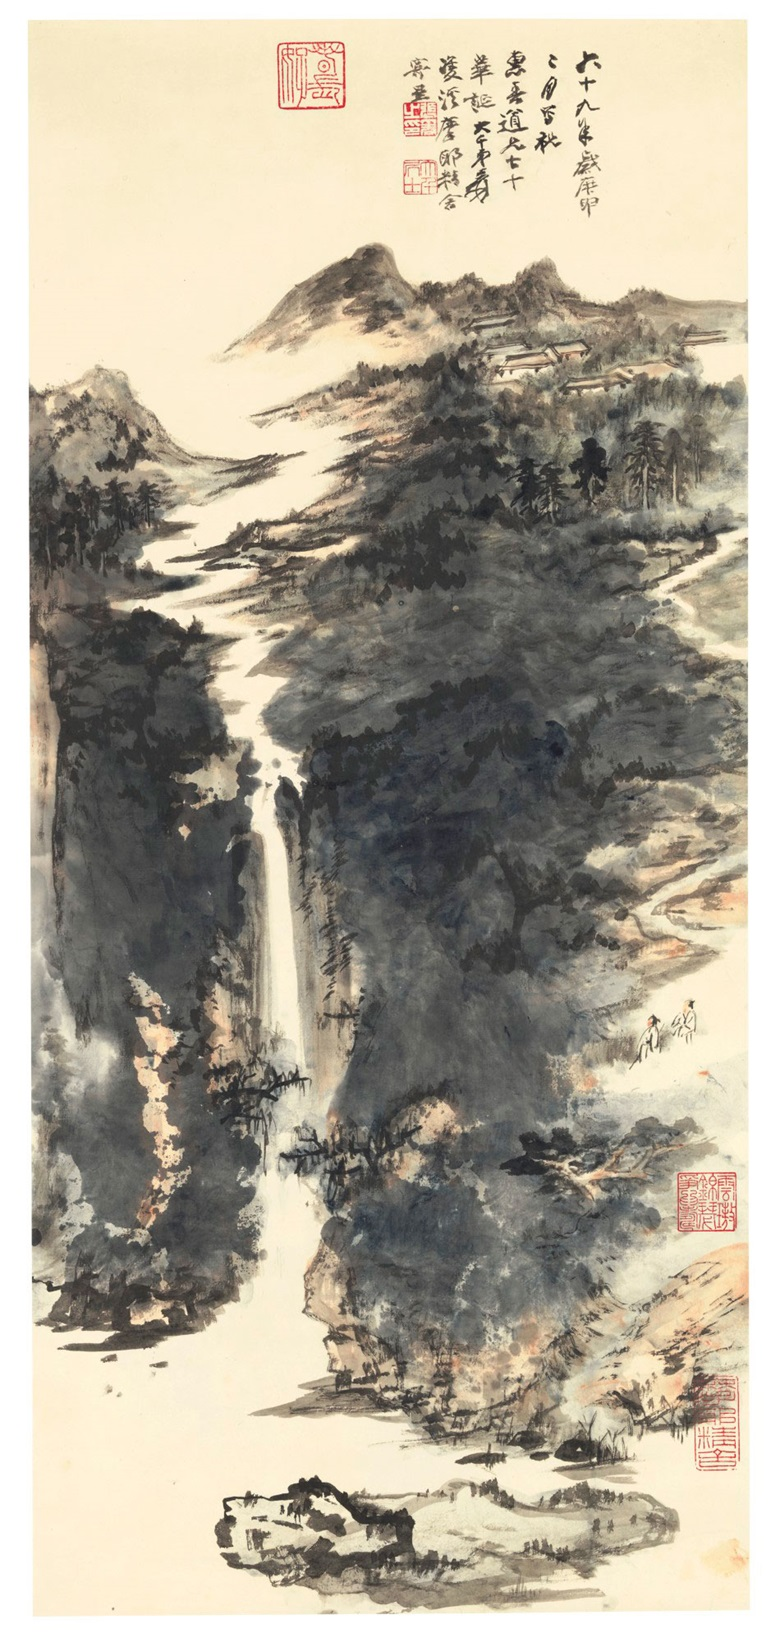 Zhang Daqian (1899-1983), Landscape, 1980. Hanging scroll, ink and colour on paper. 36½ x 16¾ in (92.7 x 42.5 cm). Estimate $100,000-150,000. Offered in Fine Chinese Paintings on 11 September at Christie's in New York